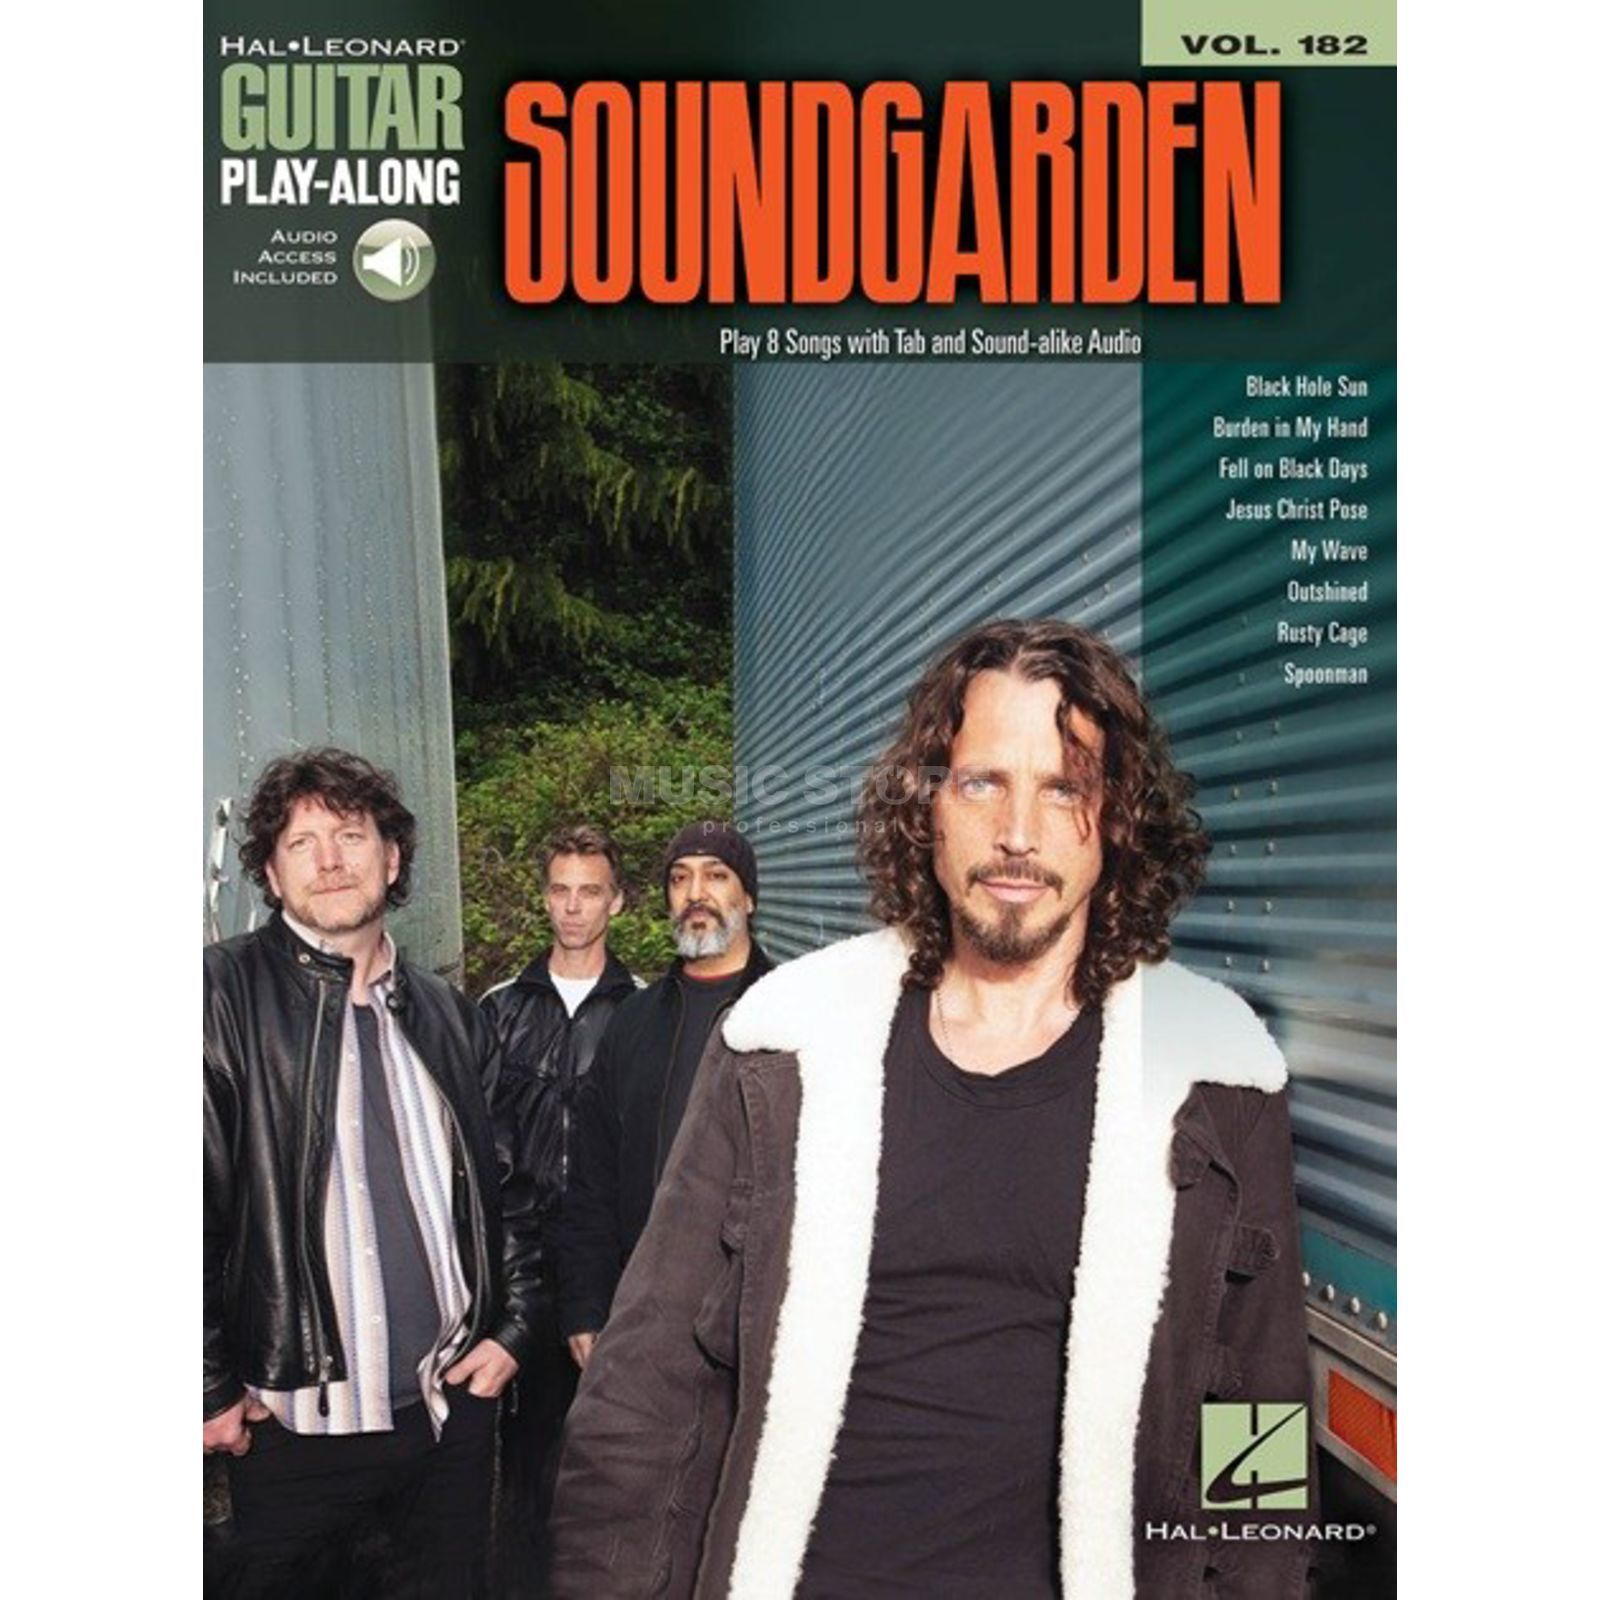 Hal Leonard Guitar Play-Along: Soundgarden Vol. 182, TAB und Download Produktbild